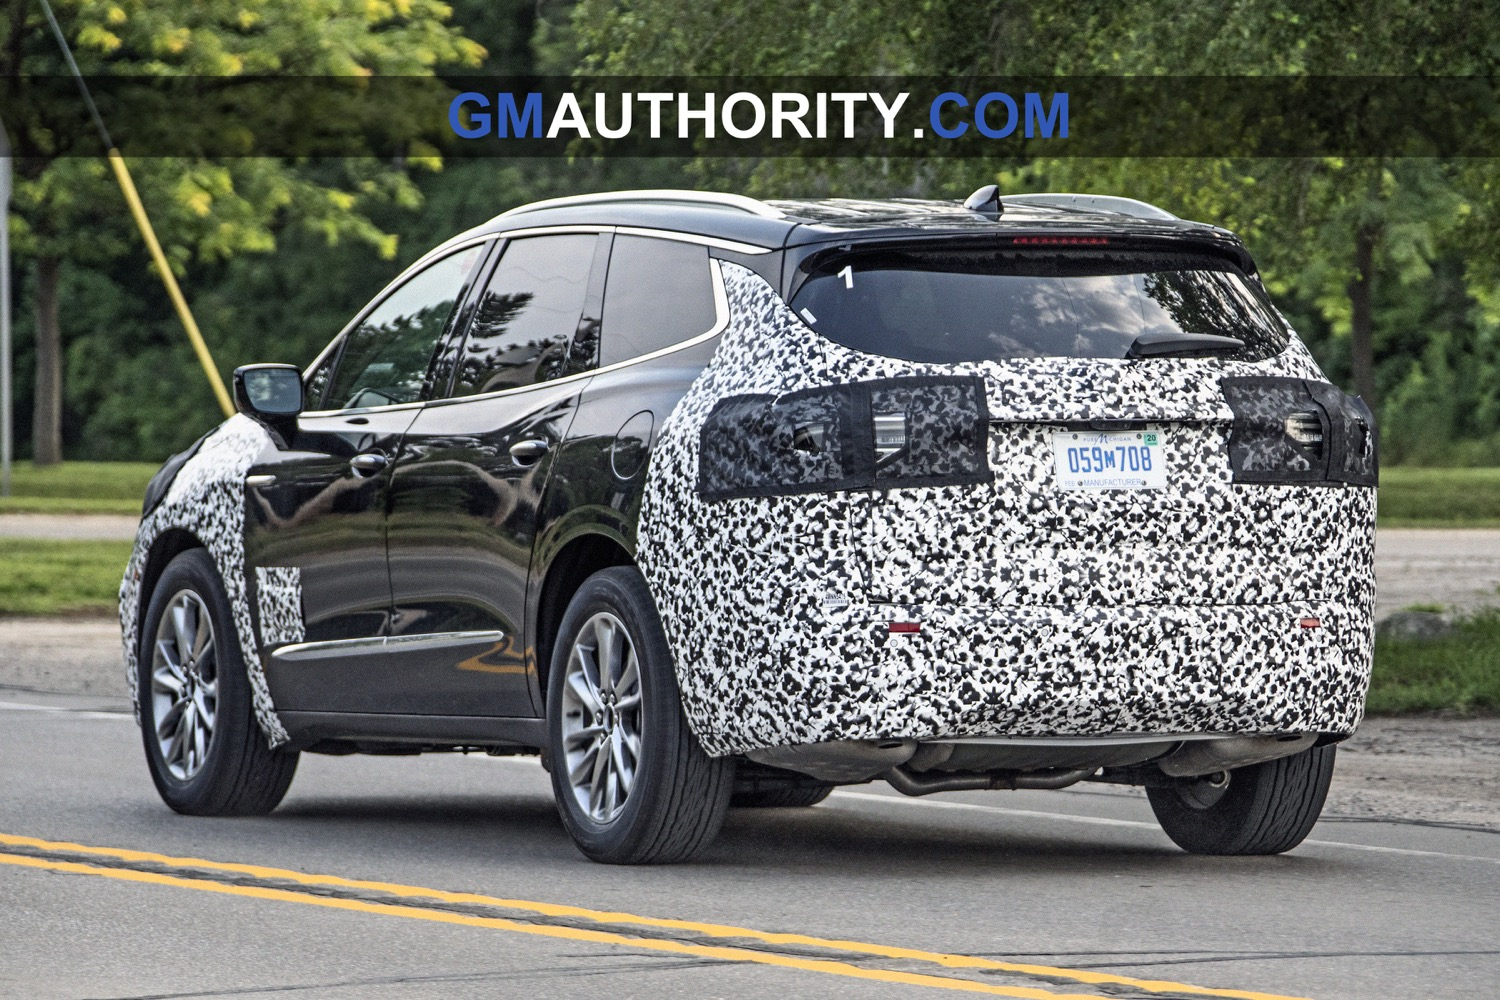 Buick Enclave Refresh Pushed Back To 2022 | Gm Authority 2022 Buick Enclave Price, Reviews, Interior